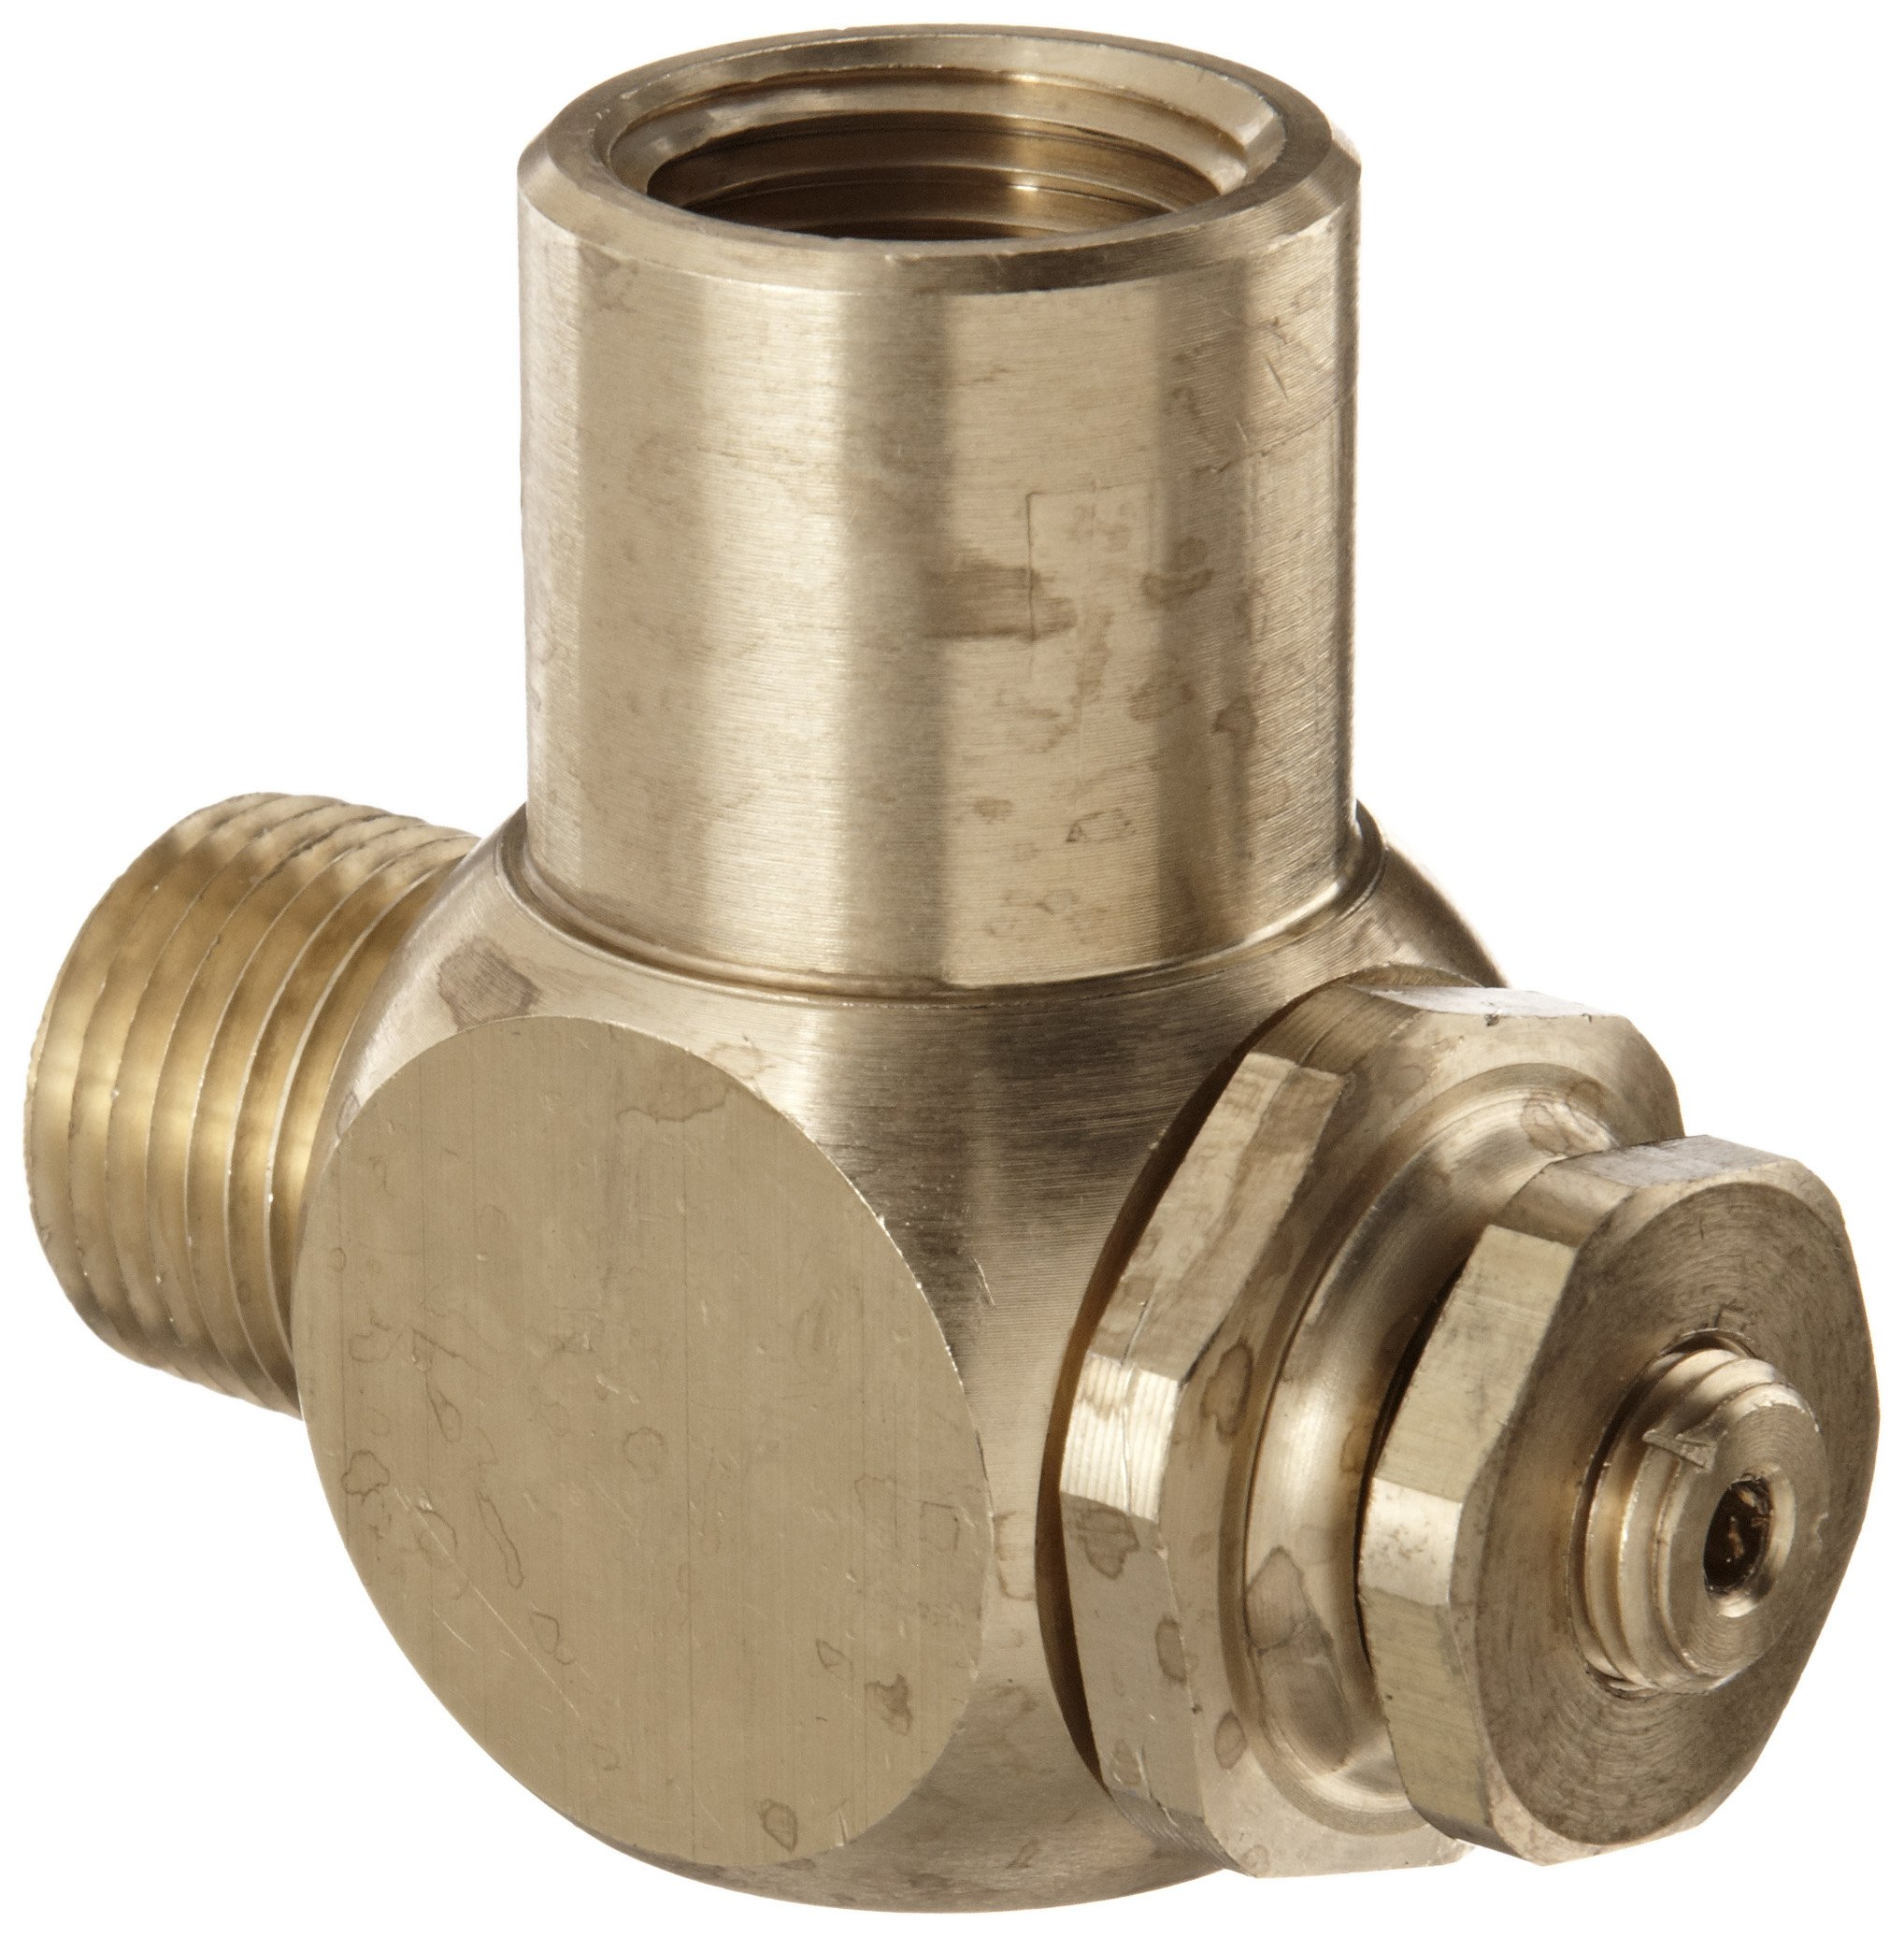 Parker 032510500 3251 Series Brass Right Angle Flow Control Valves, 1/2'' NPT Male x Female, 125 psi